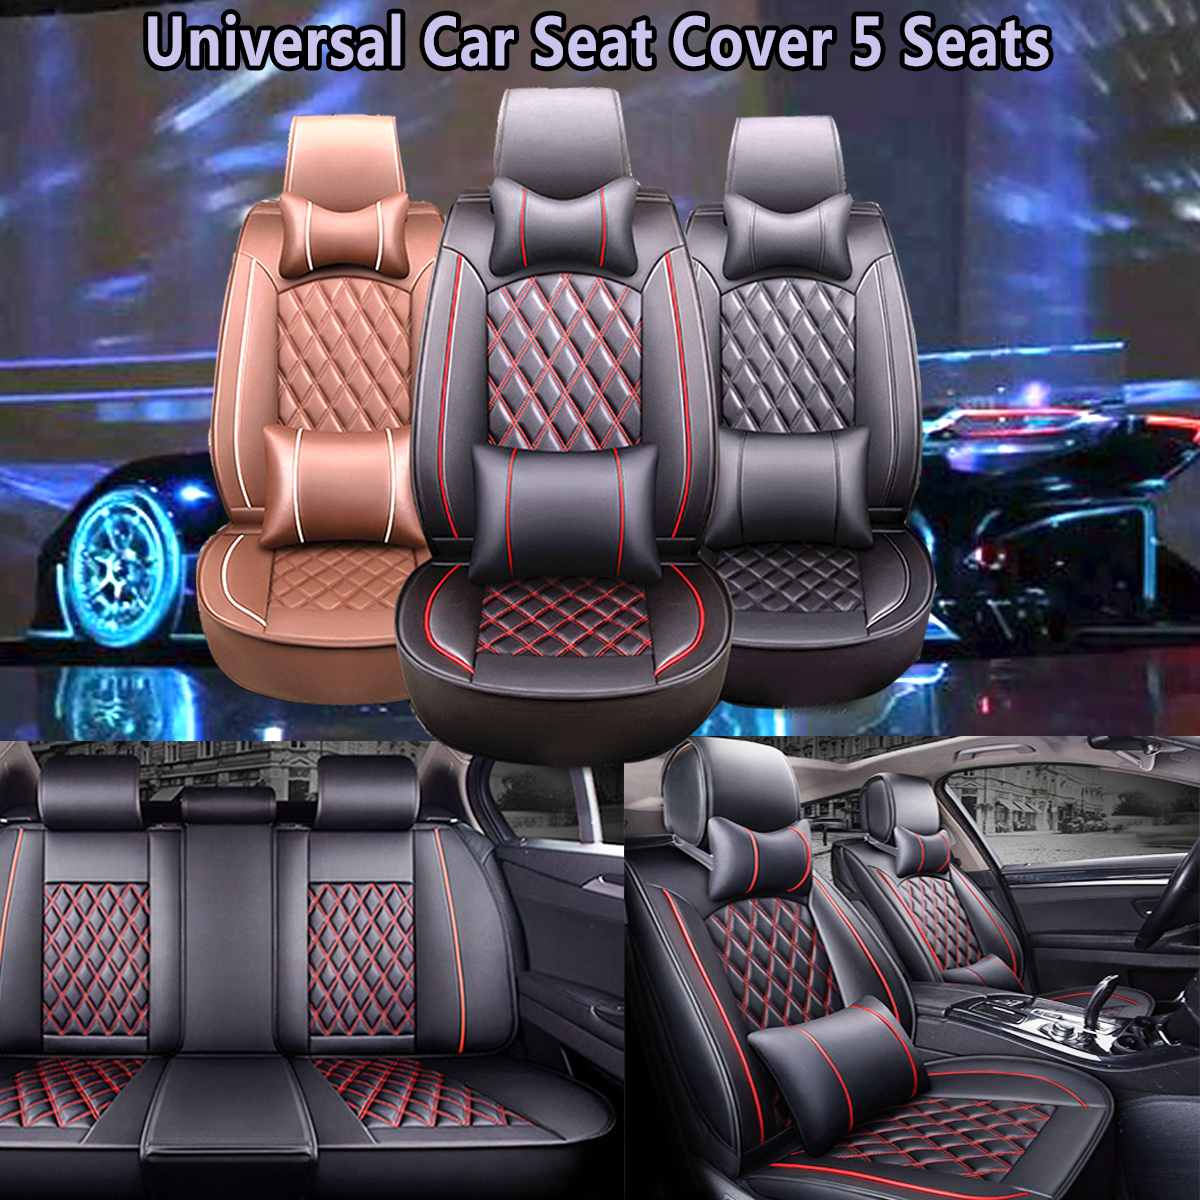 Universal Car 5 Seat Covers PU Leather Cotton Seat Cushion Protection Covers For Honda/VW/Toyota